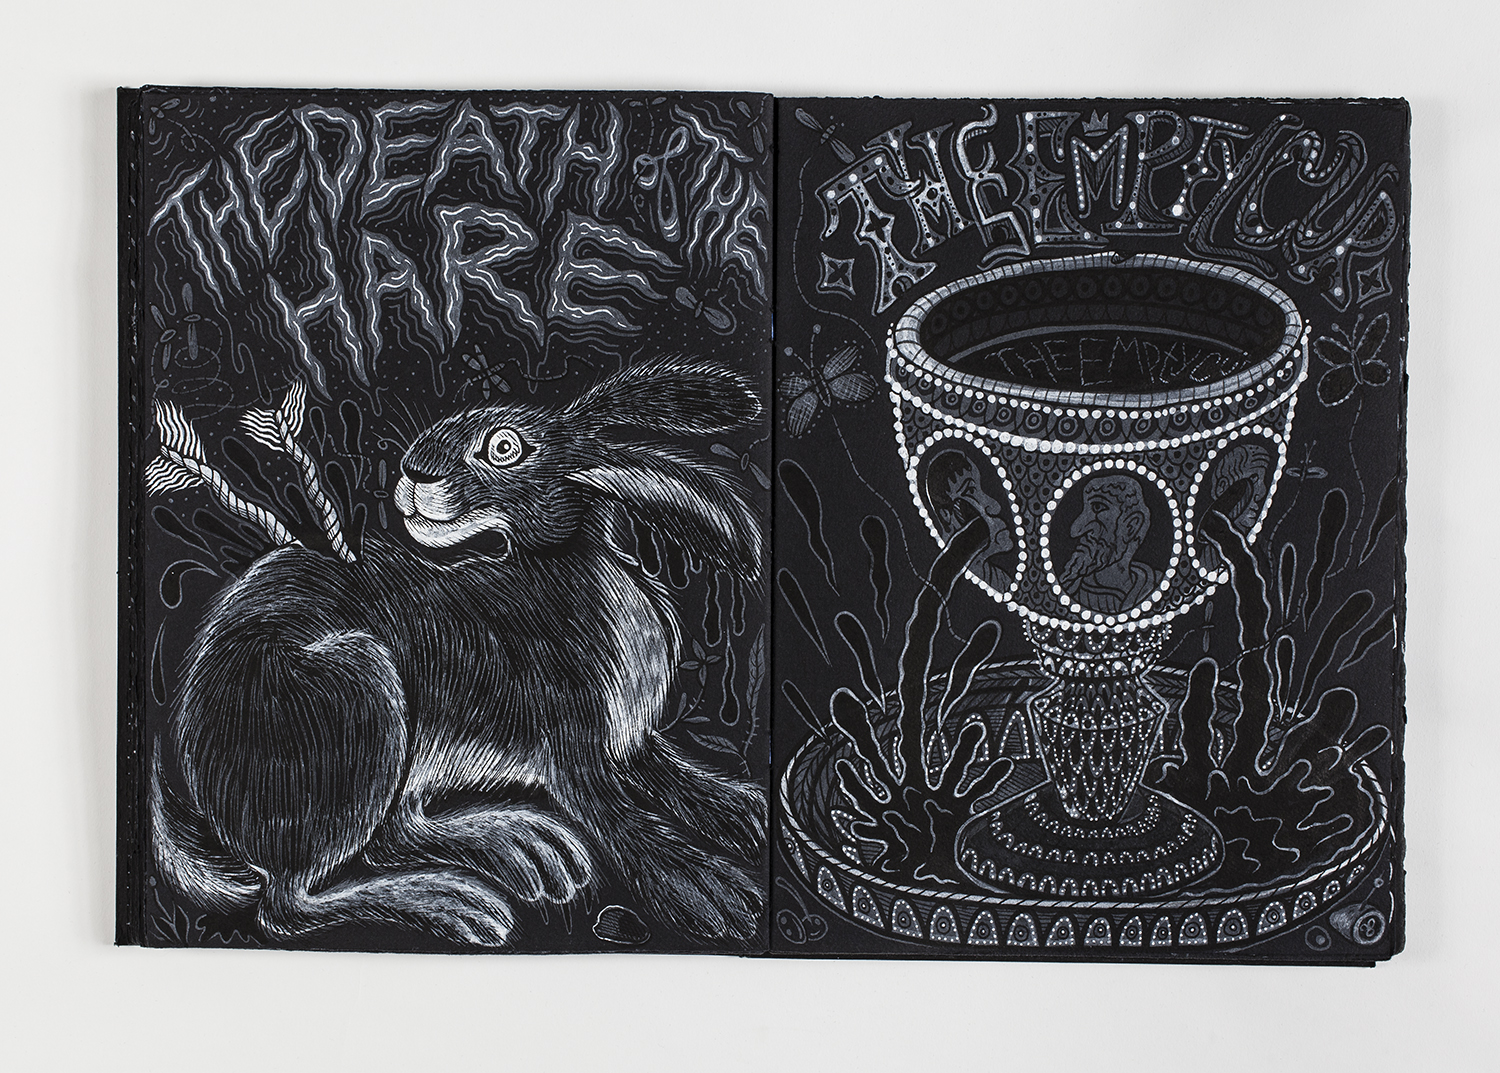 The Death of the Hare/The Empty Cup